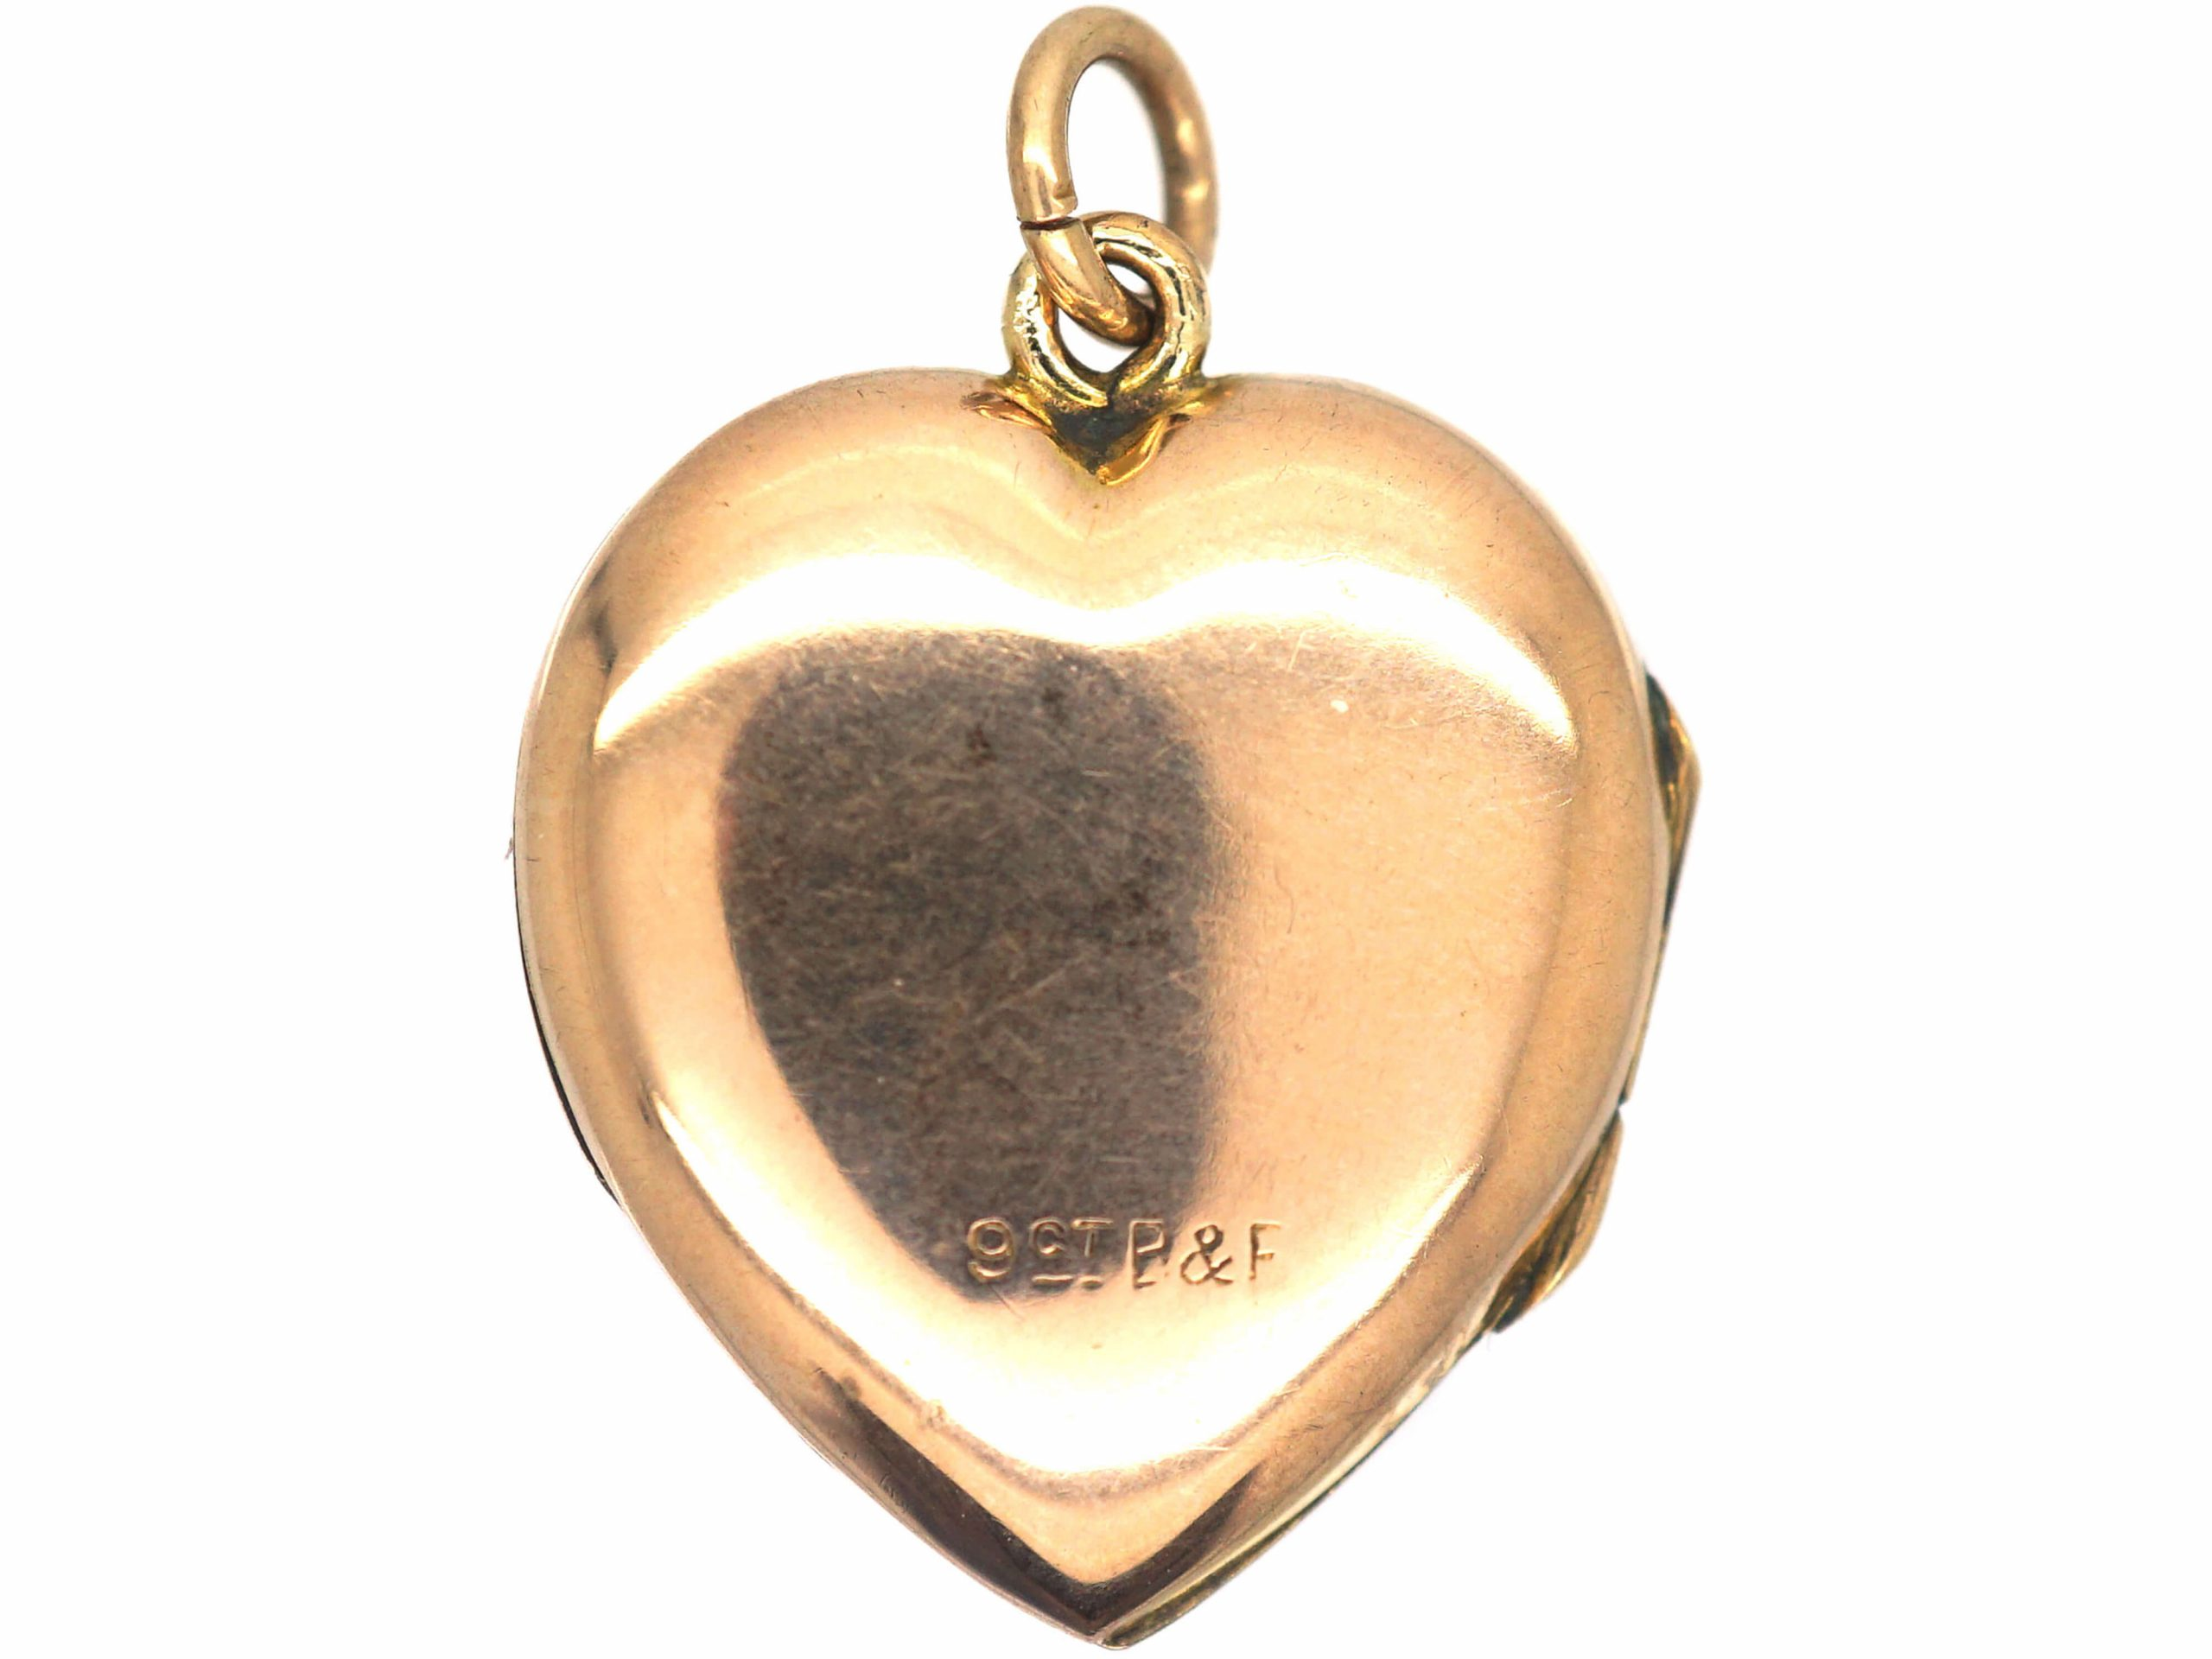 Edwardian 9ct Gold Back & Front Heart Shaped Locket with Engraved Front